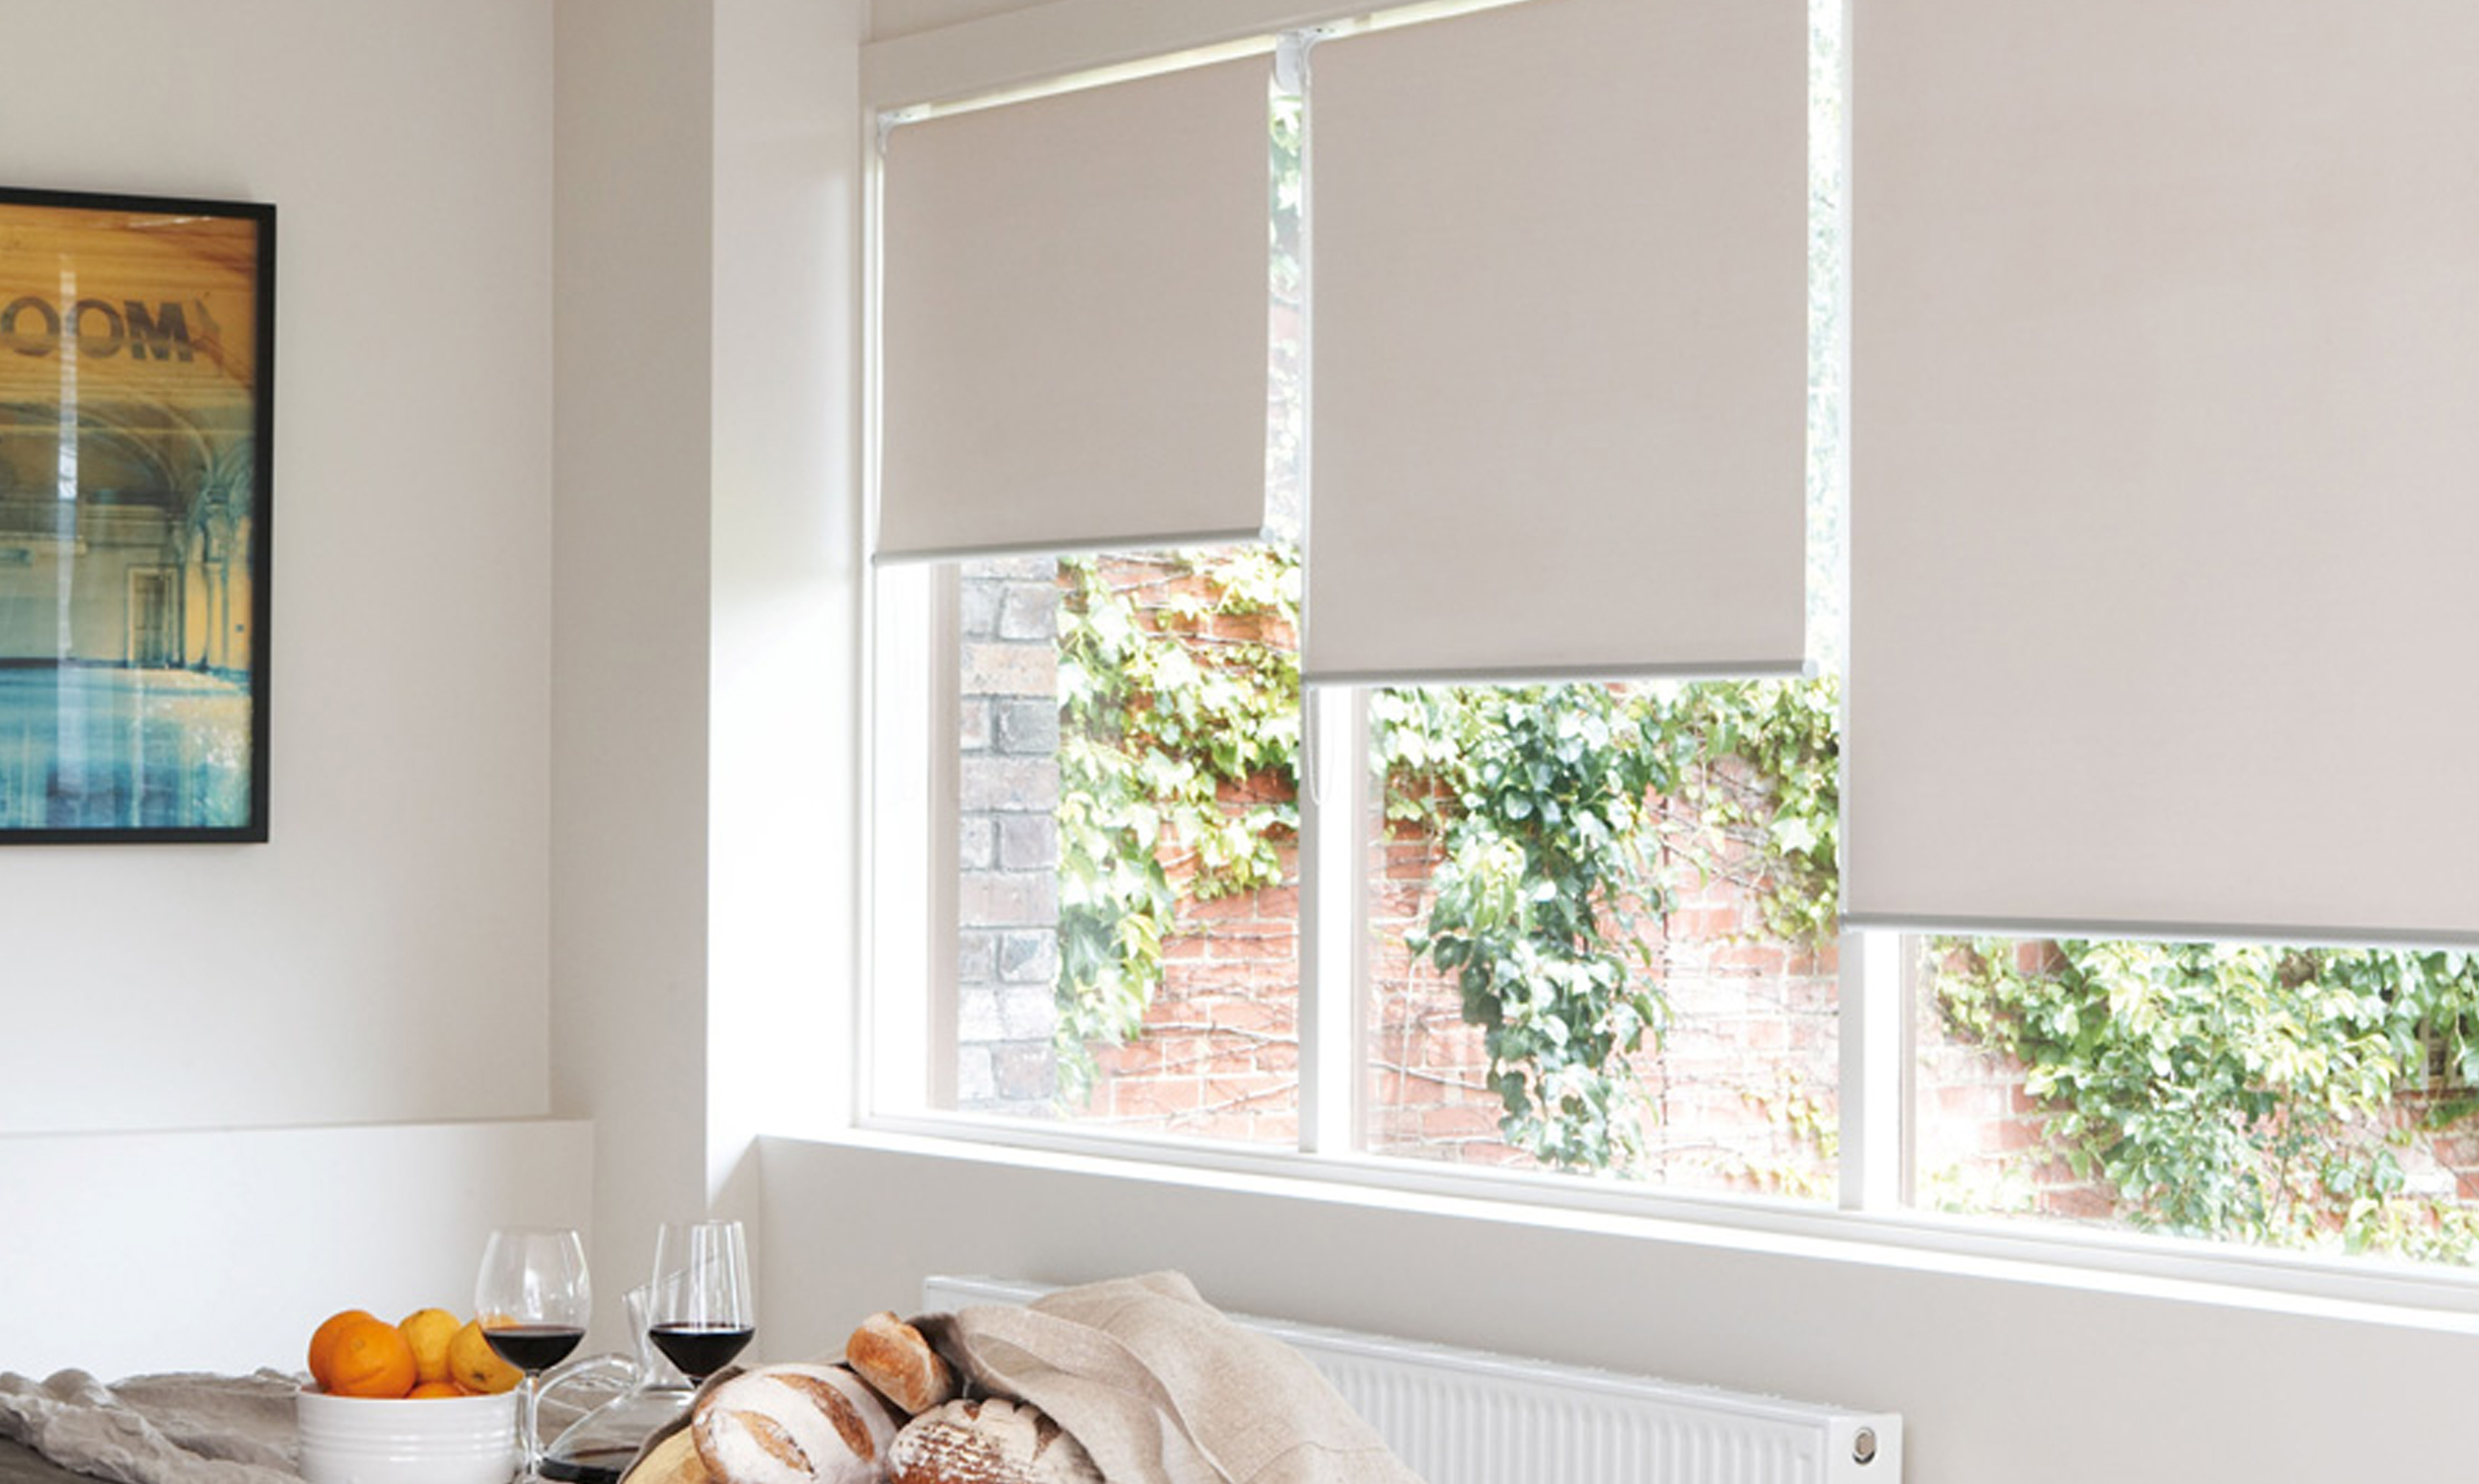 didn morgan bedroom in com such tjp that product utilized blinds blog is select window hoj jade where the of natural great farmhouse house a there another large brings interiors master we light stairwell space t